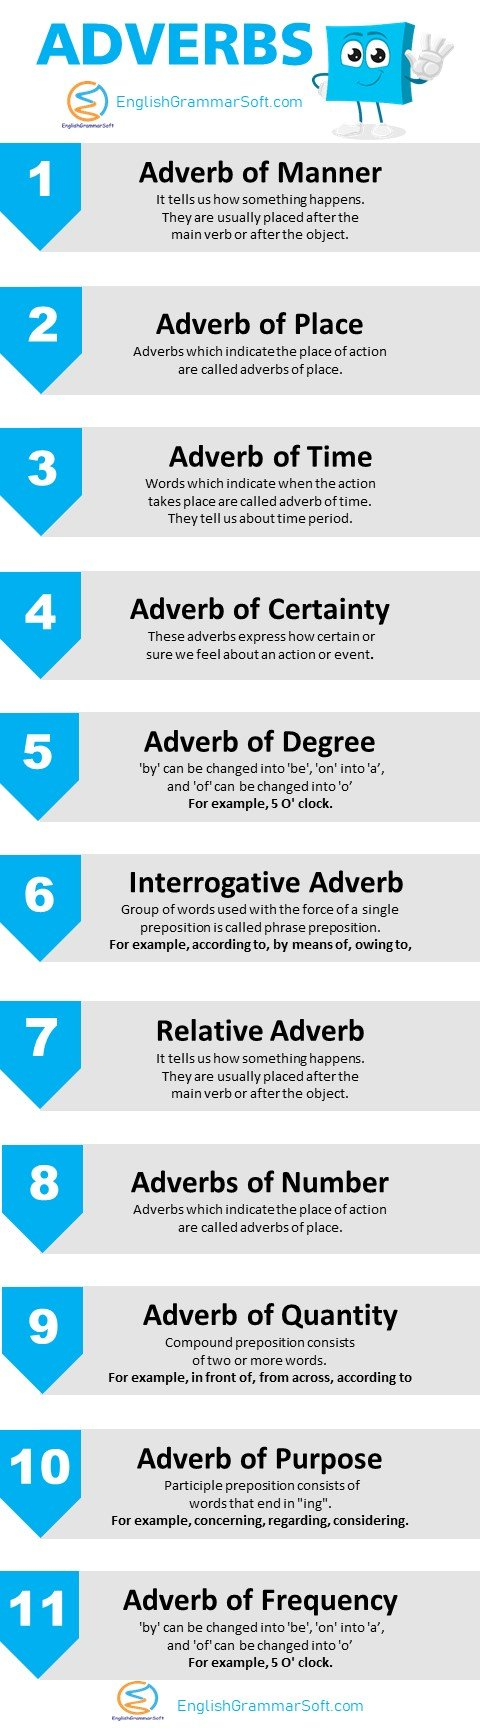 11 types of adverbs